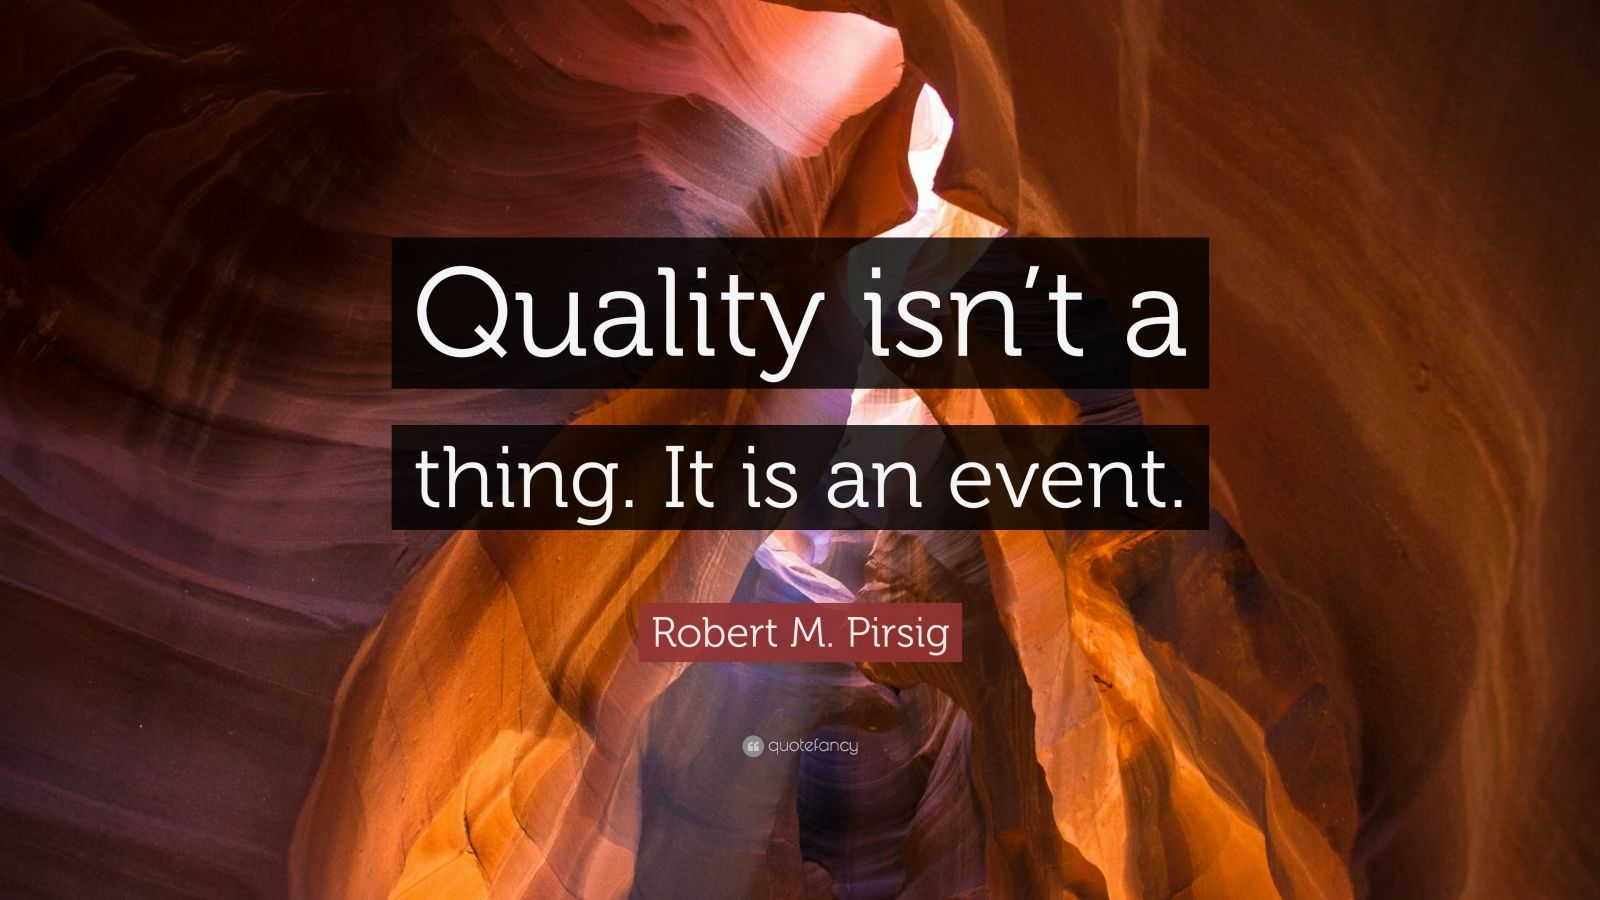 """Robert M. Pirsig Quote: """"Quality isn't a thing. It is an event."""""""